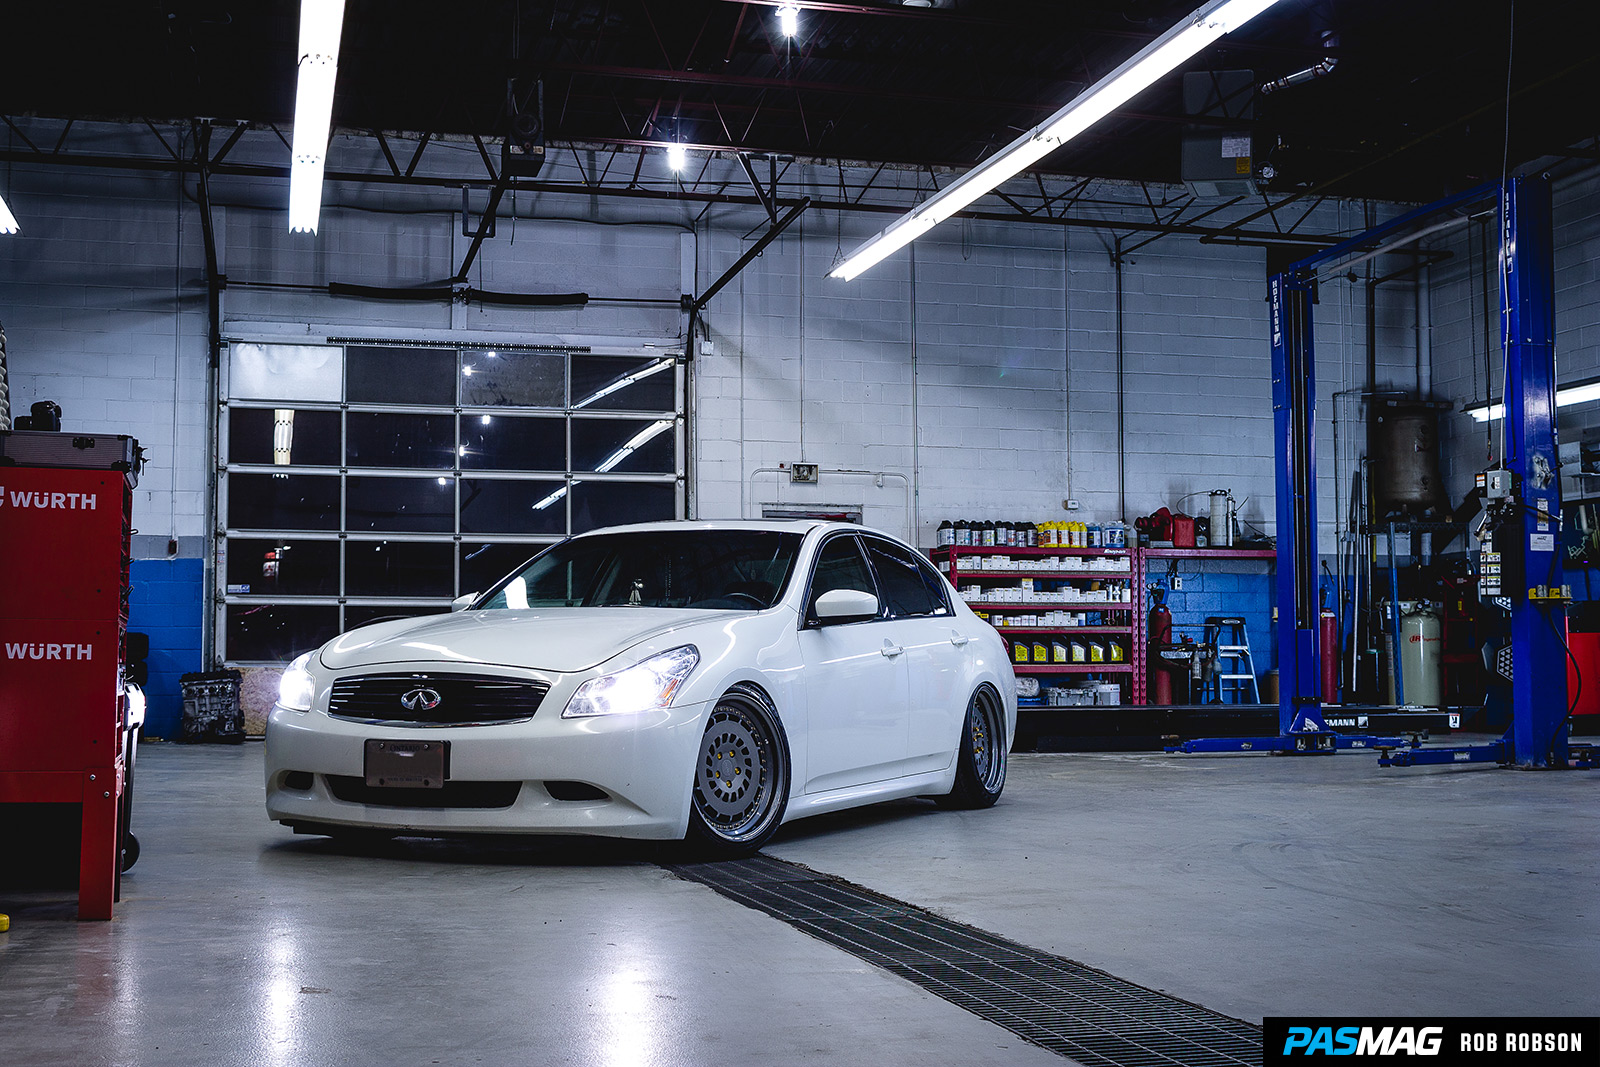 Fitted 101 Infiniti G37xS PASMAG Rob Robson 50